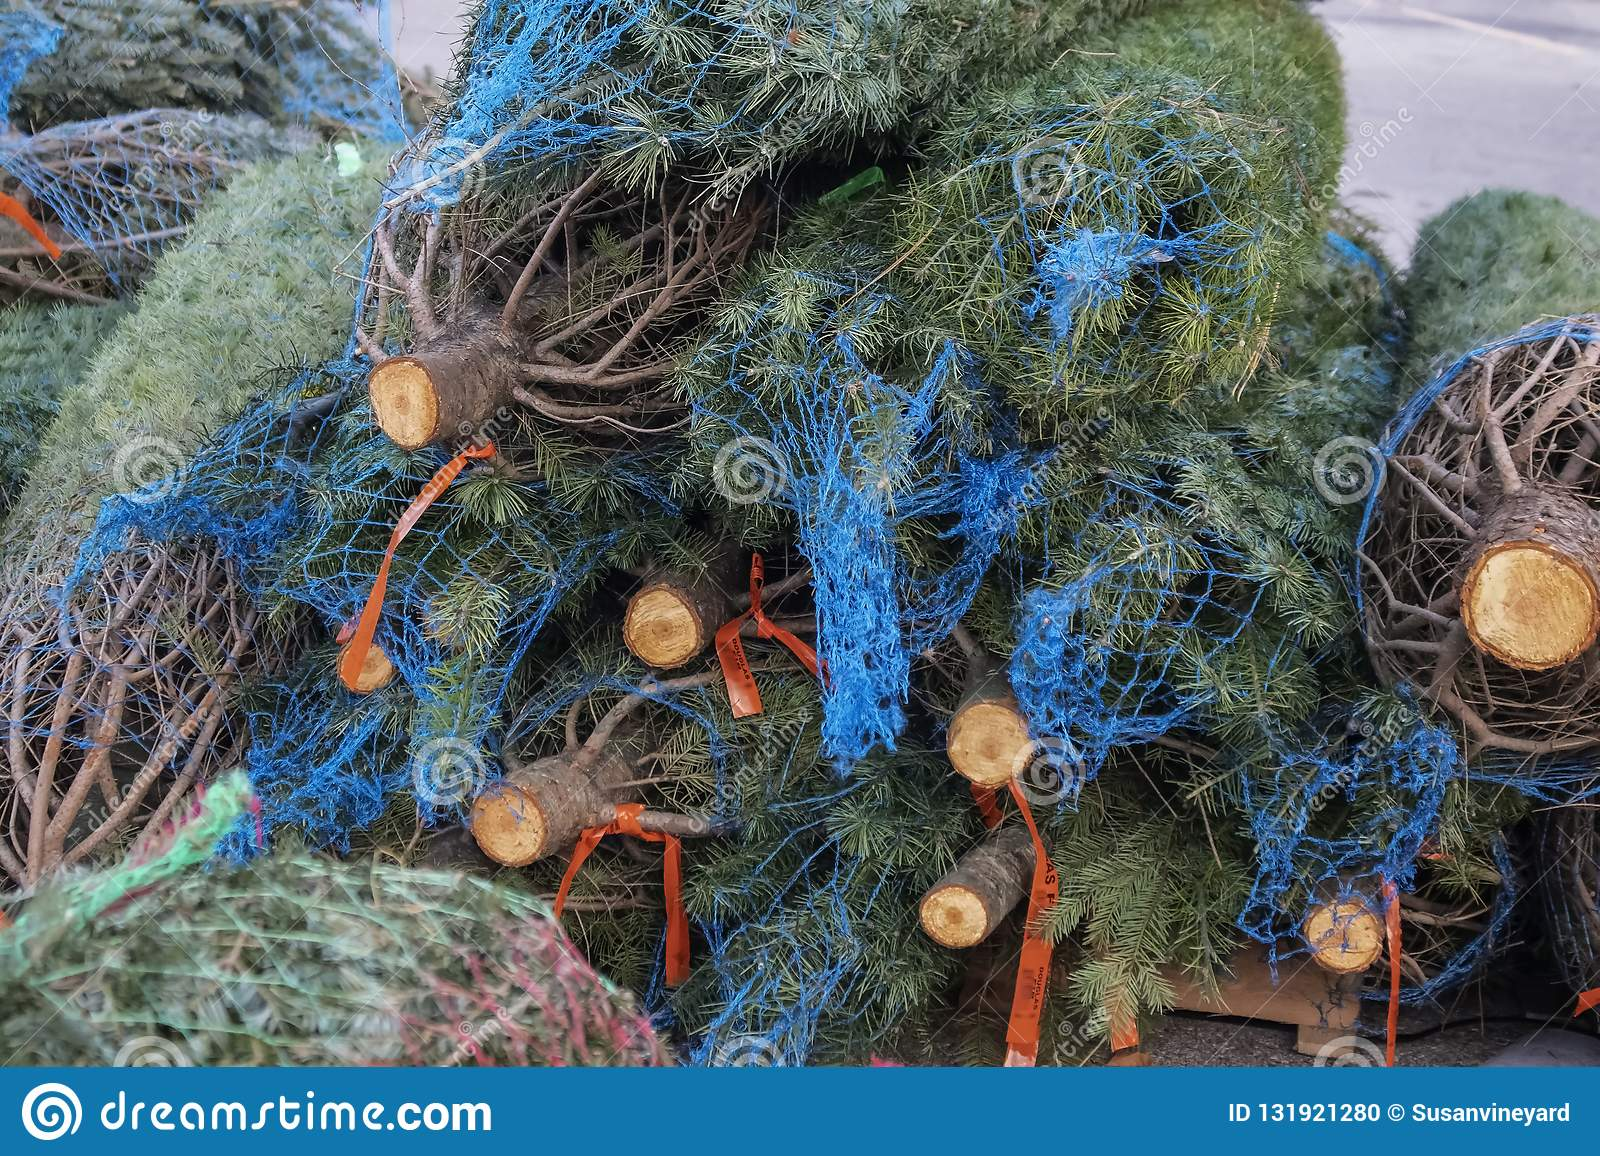 Live Fresh Douglas Fir Christmas Trees In Netting On A Palette To Be